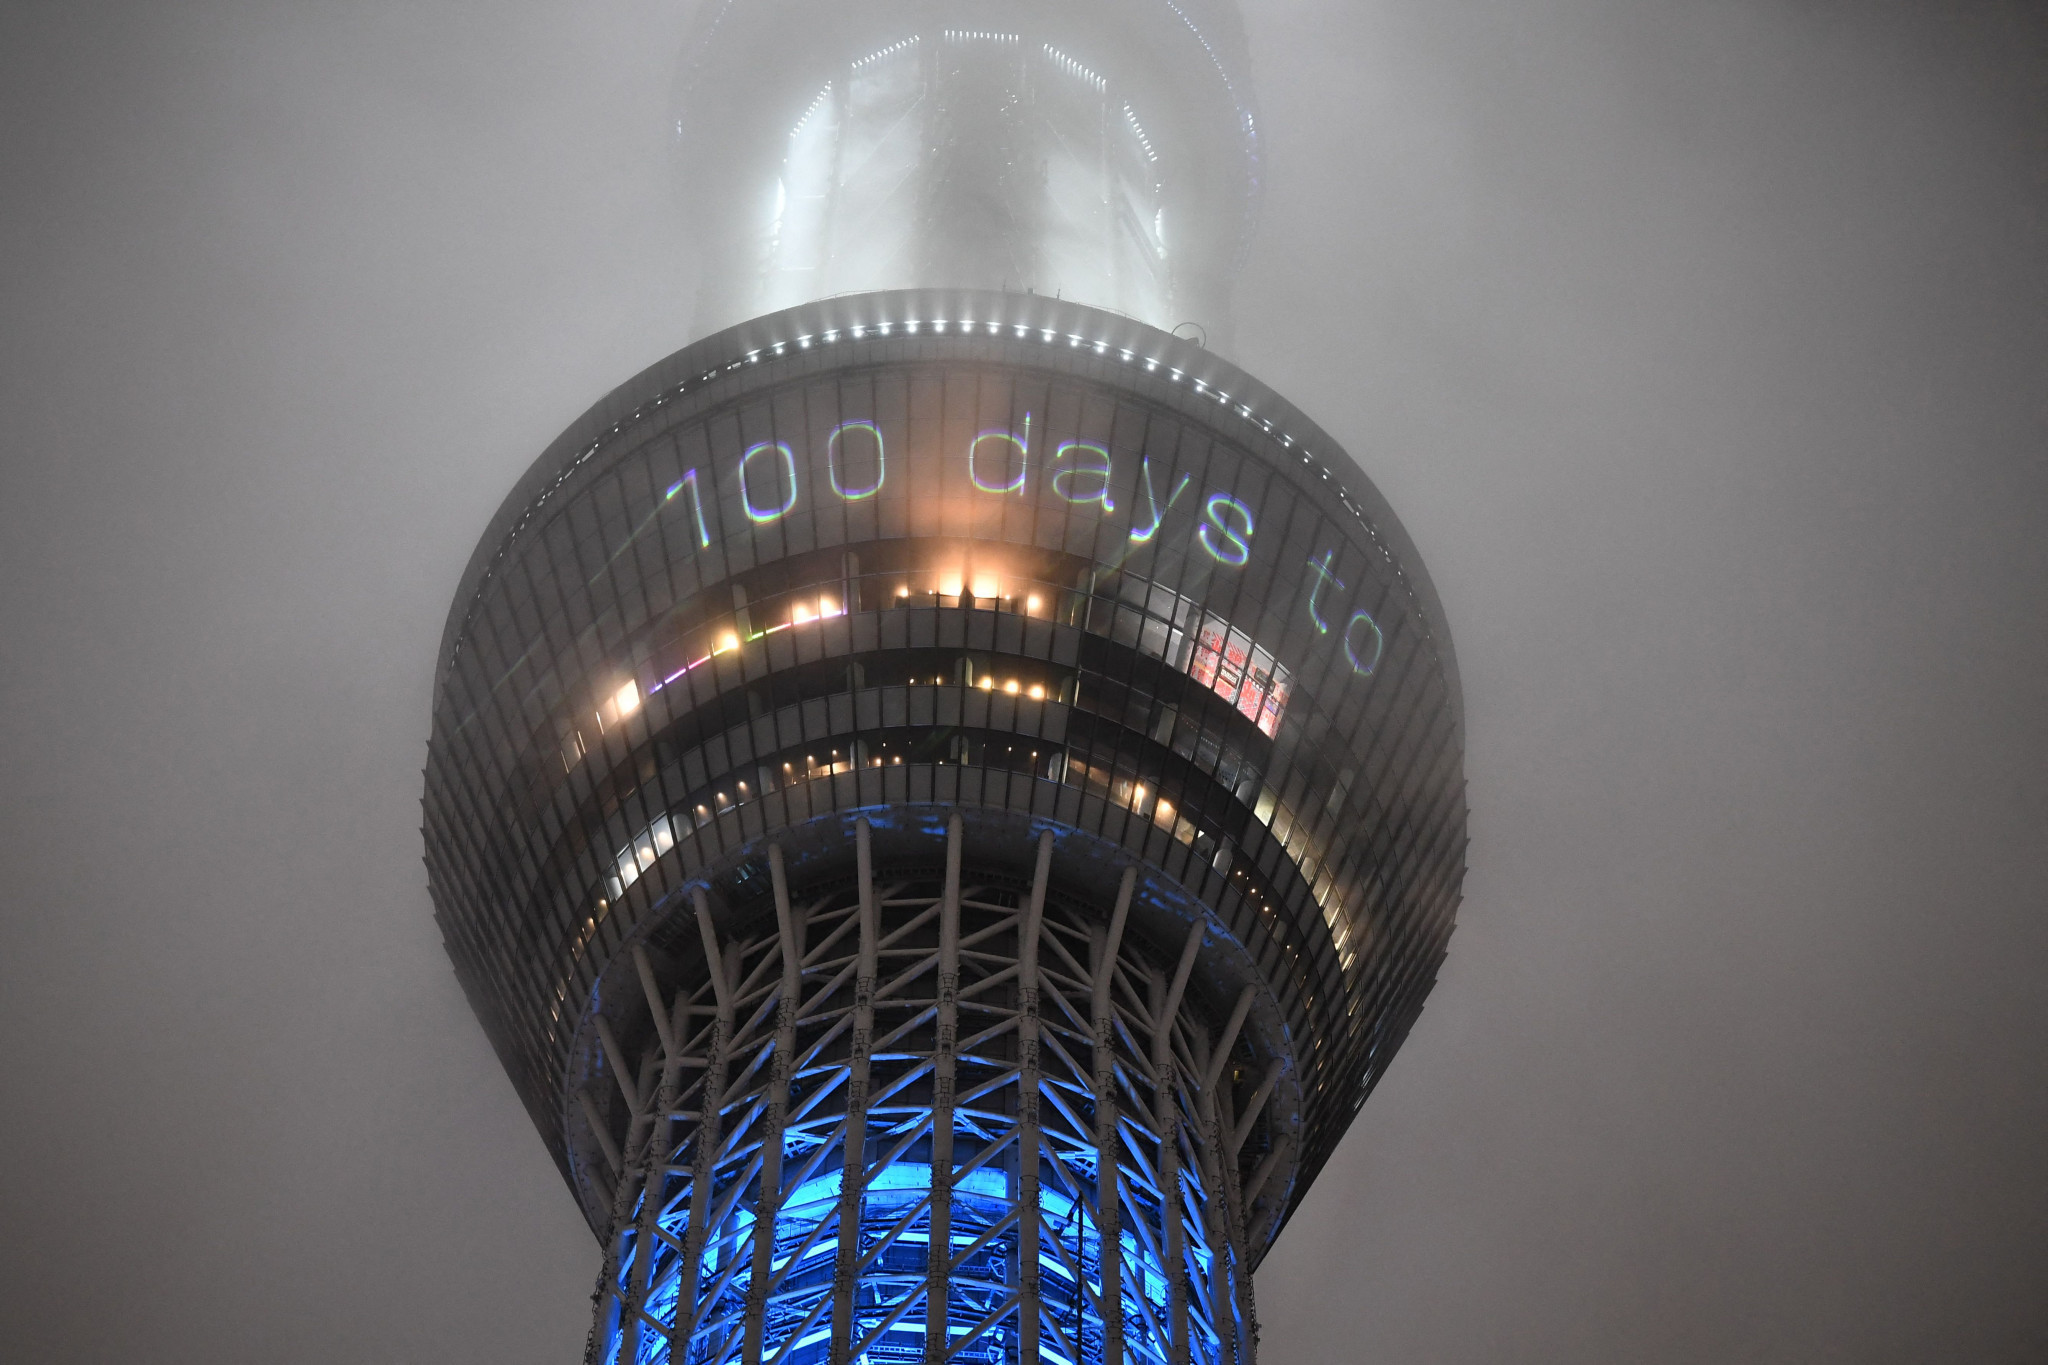 The 100 days countdown until the start of the Tokyo 2020 Olympic Games has been displayed on the illuminated Tokyo Skytree ©Getty Images